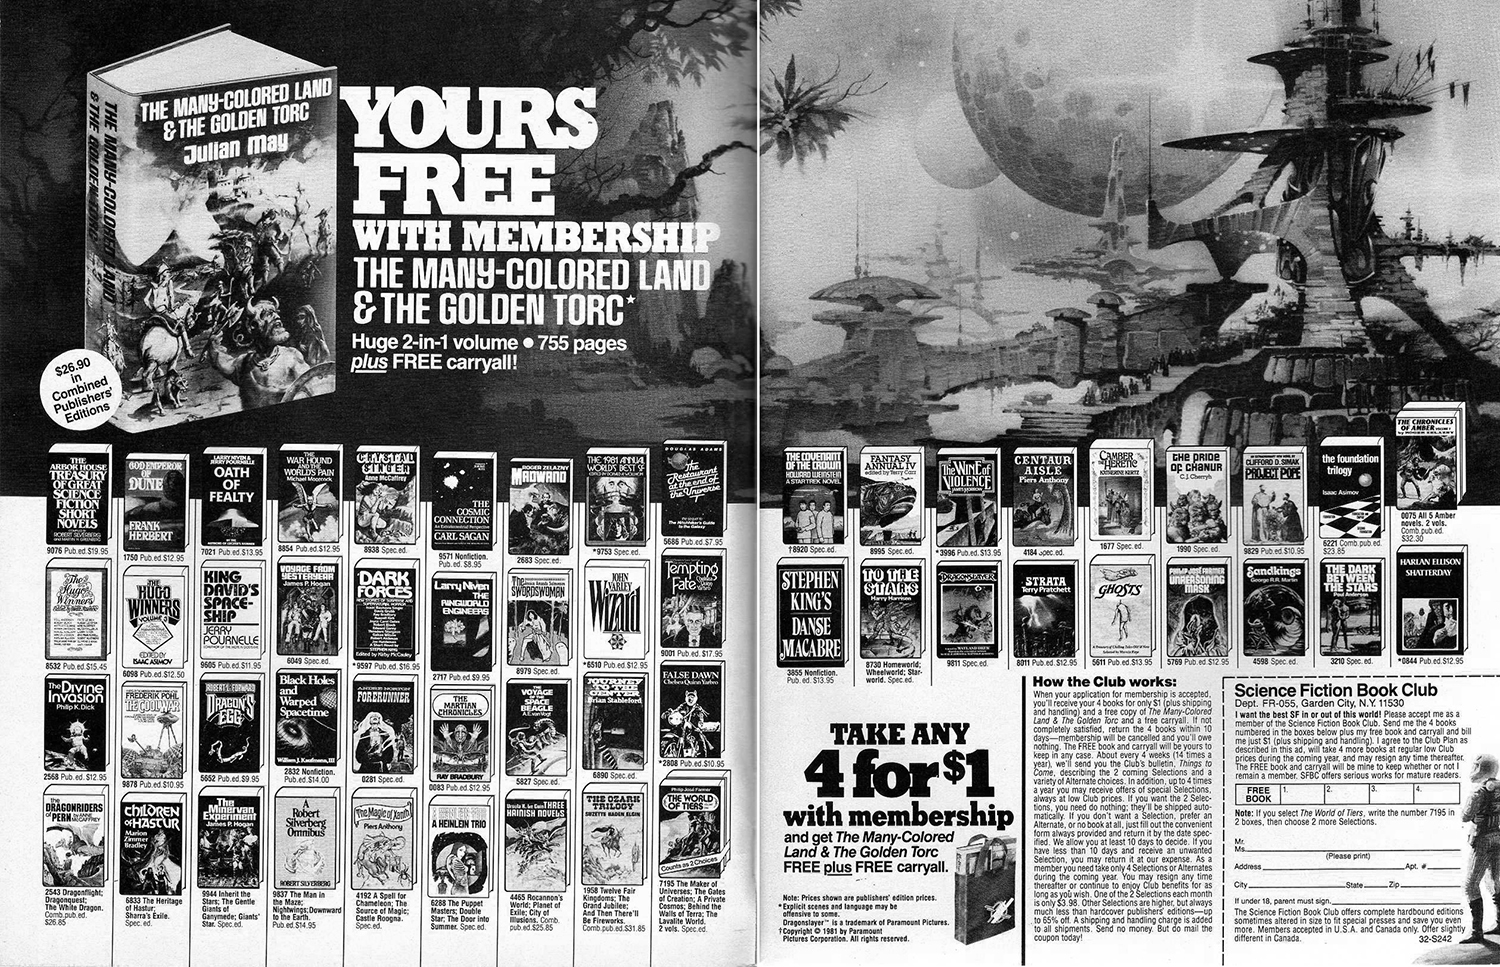 1981 fantasy sci fi book club advert